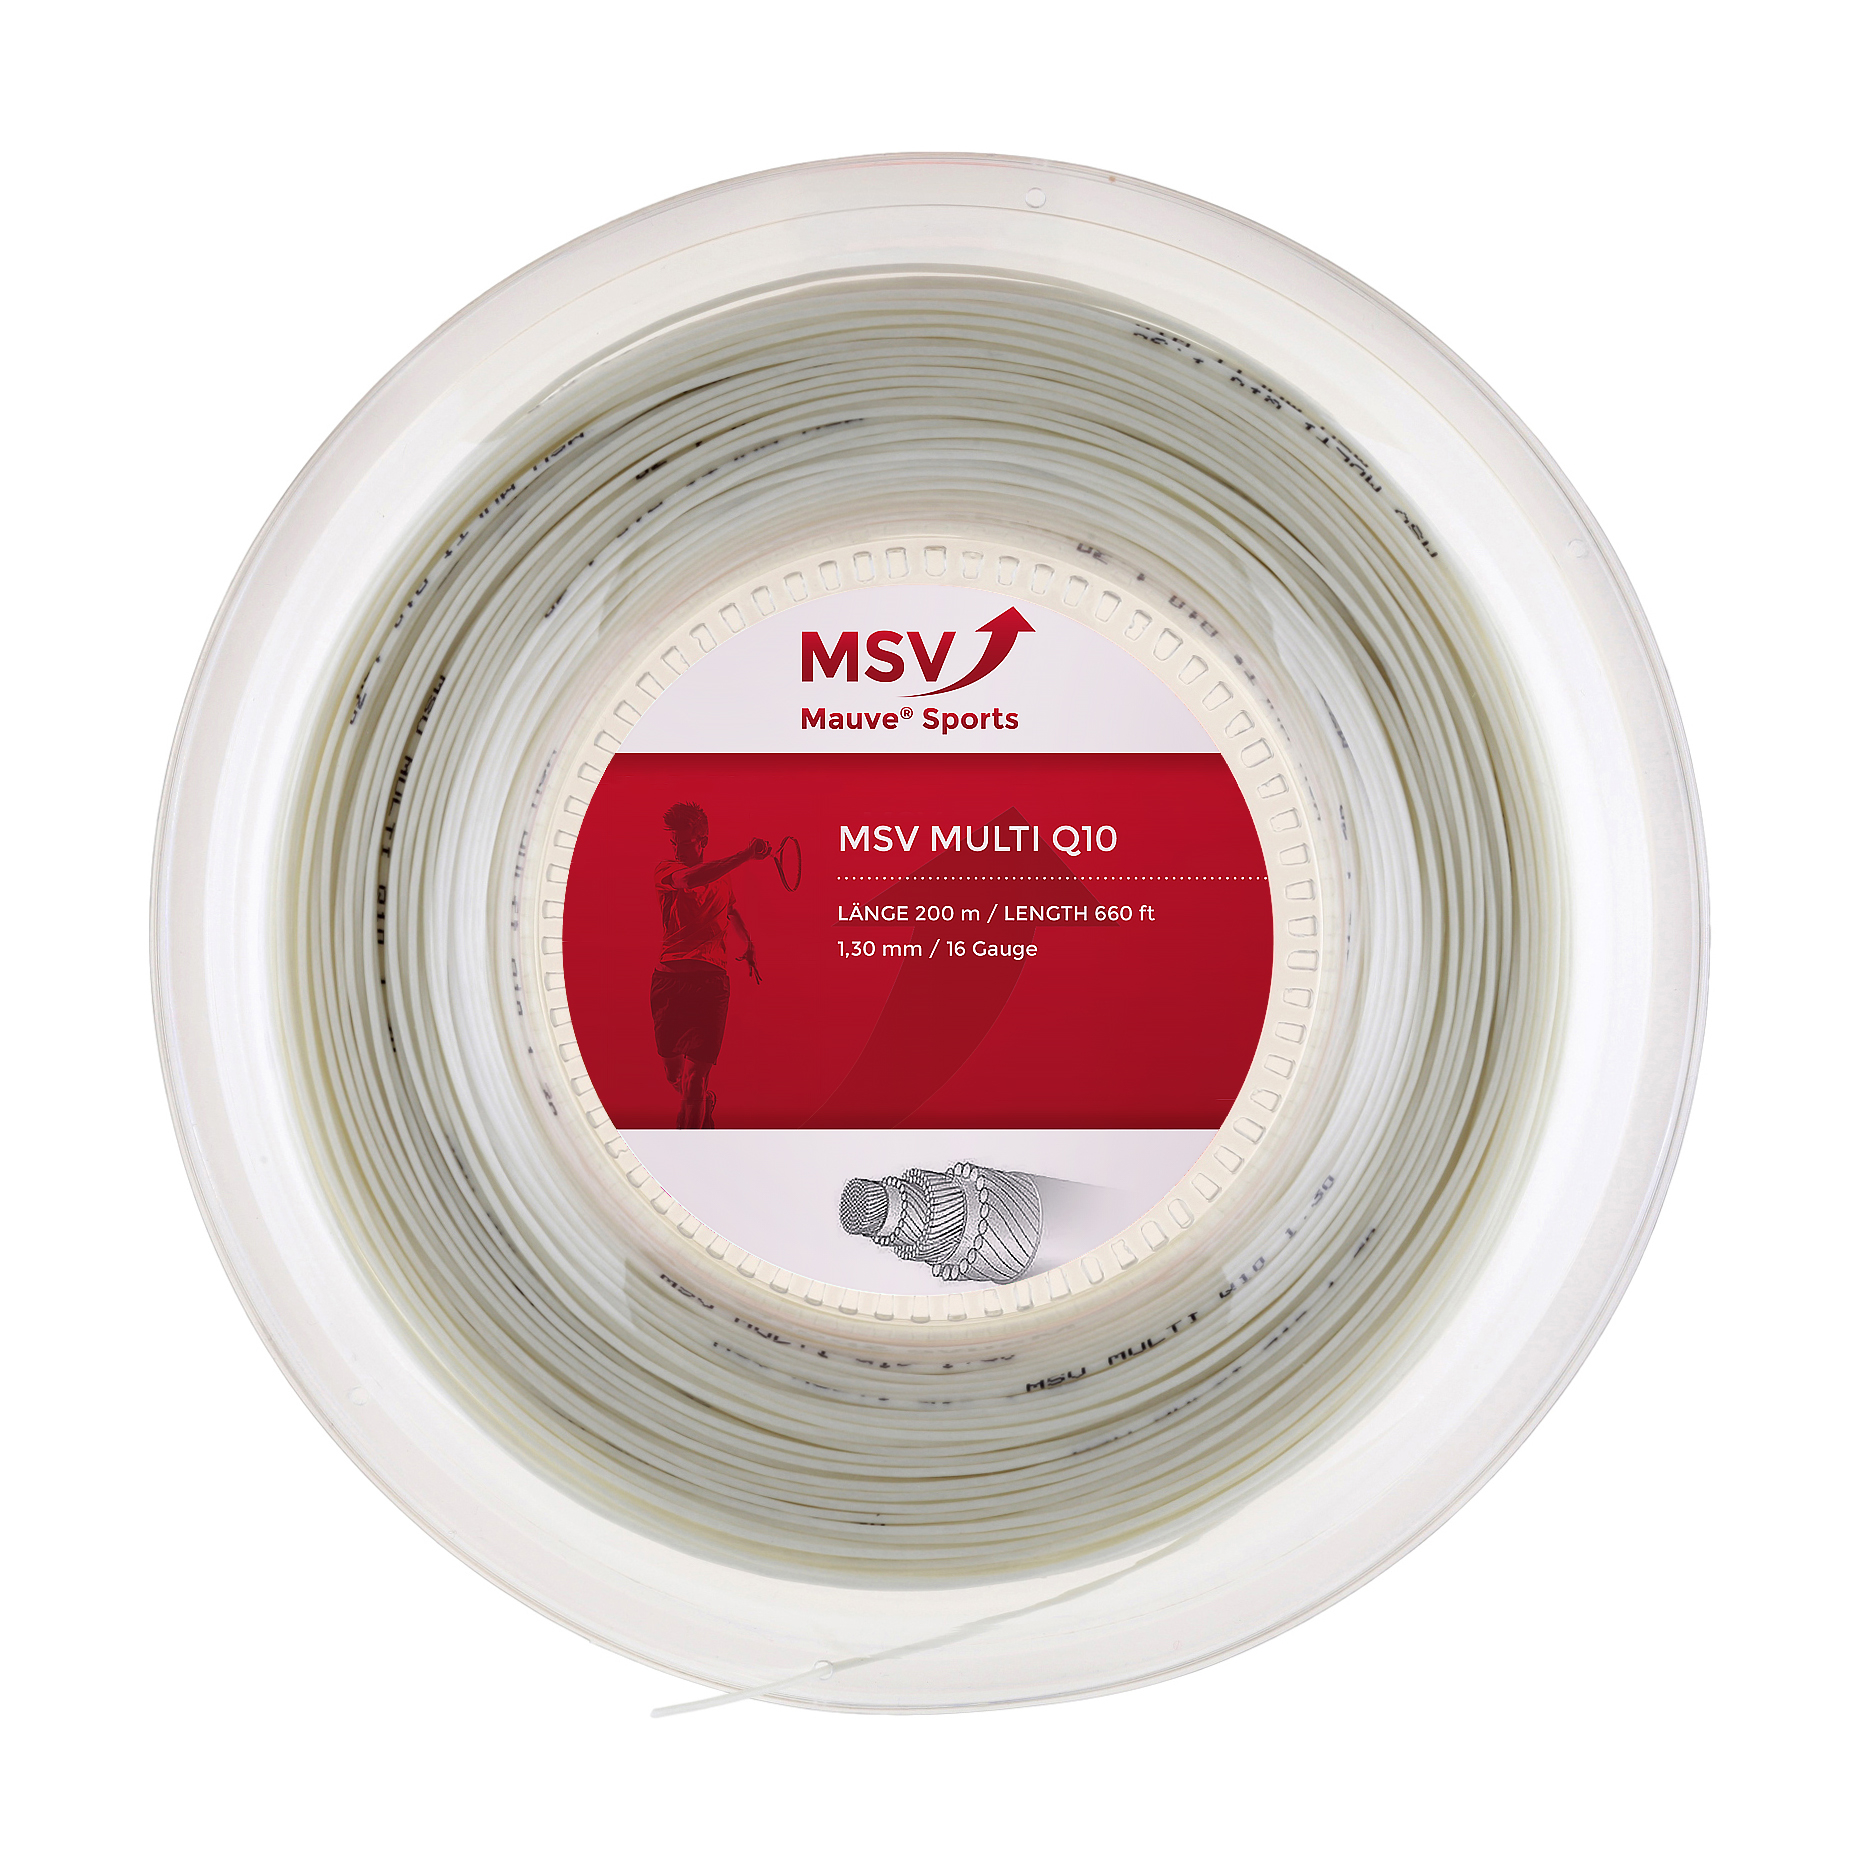 MSV Multi Q10 Tennis String 200m 1,30mm white